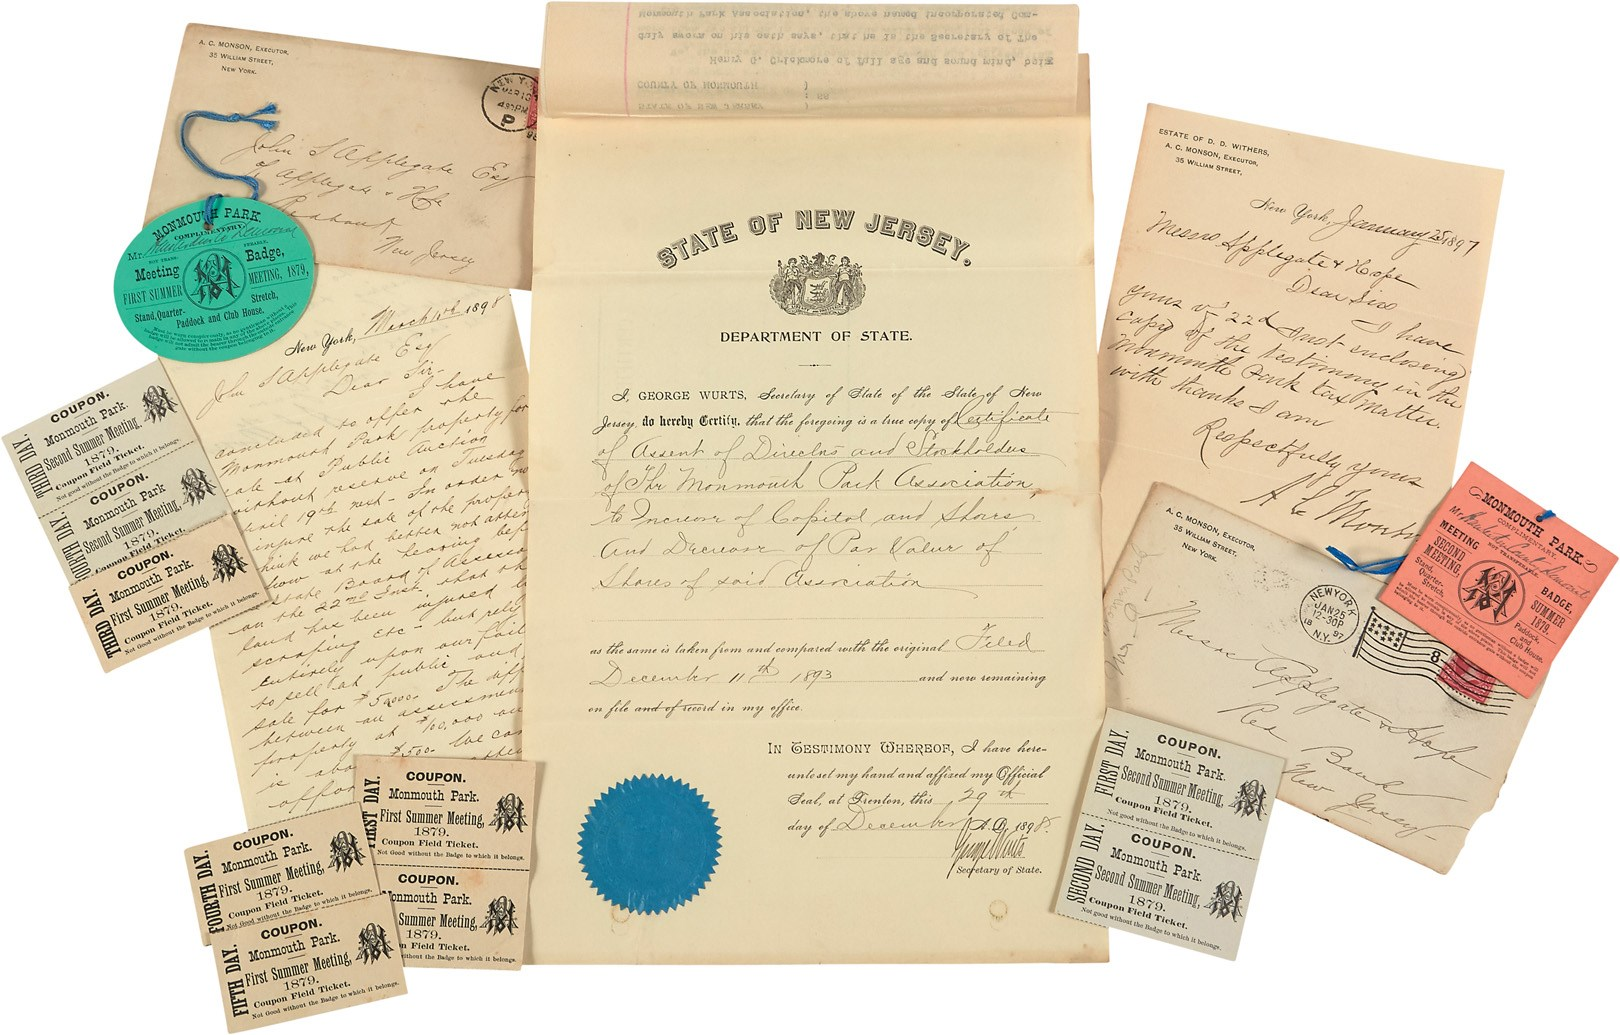 19th Century Historic Monmouth Park Collection (14)